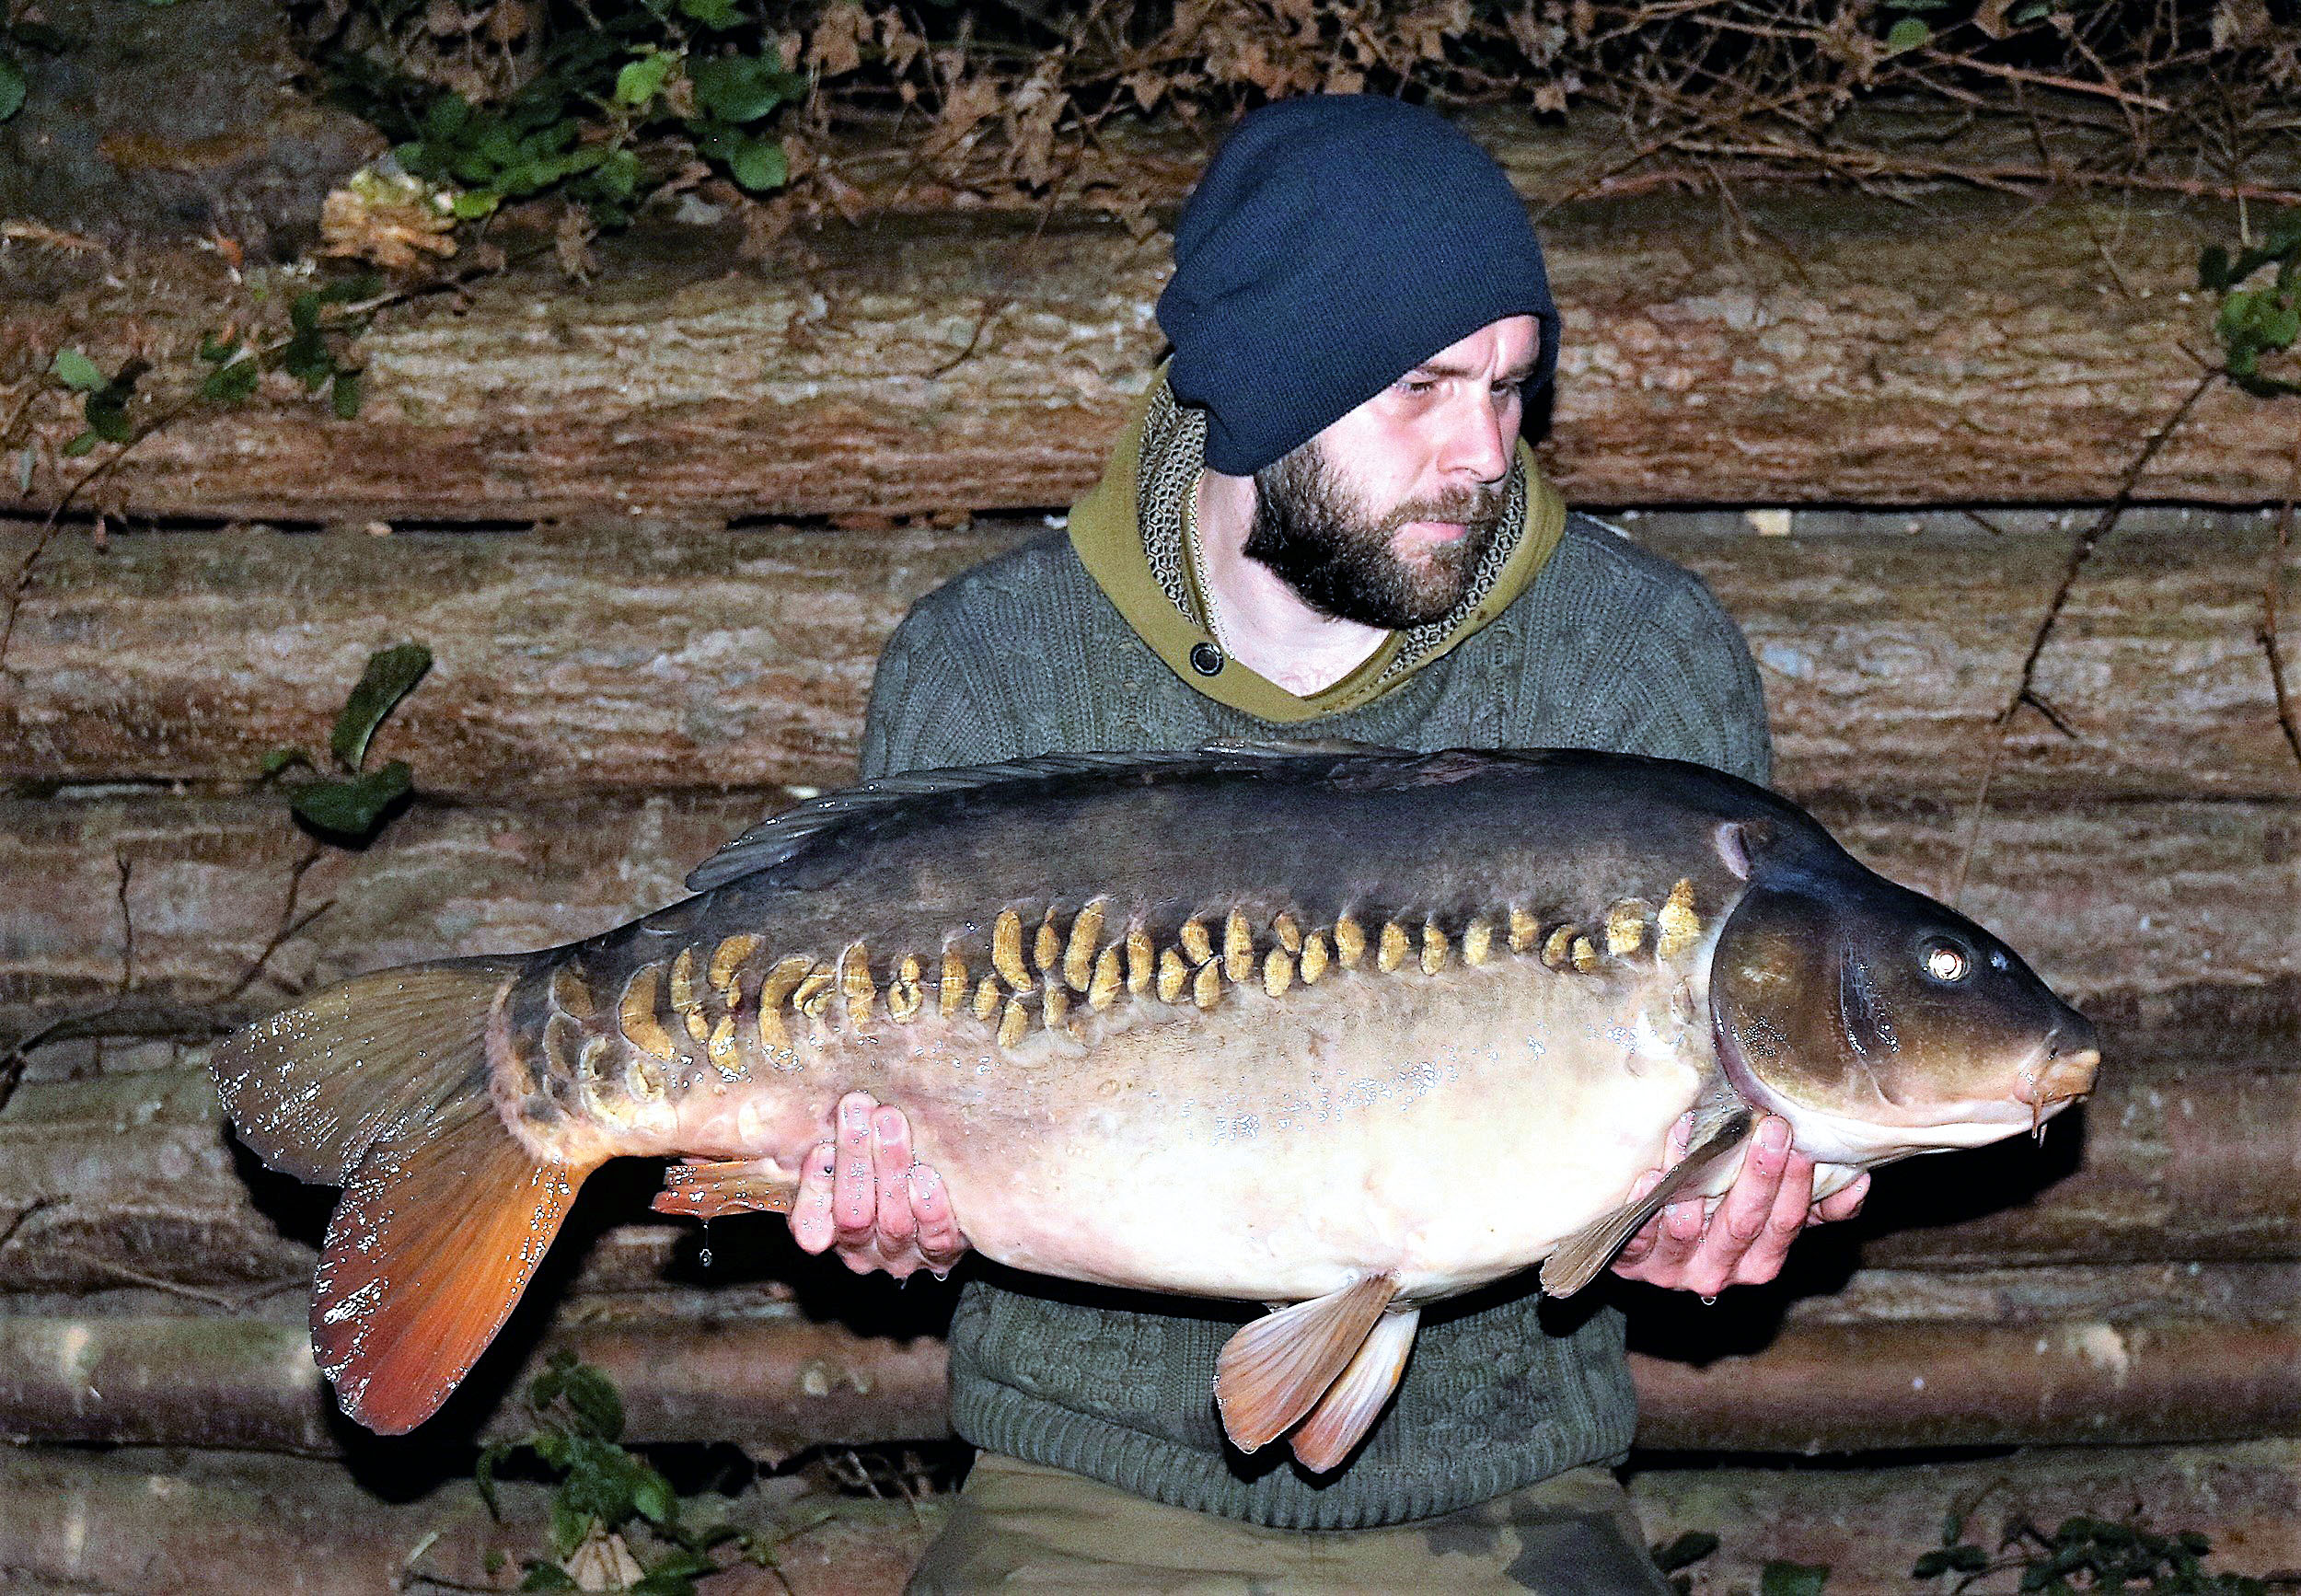 A cracking 36lb linear to kick the autumn off in style